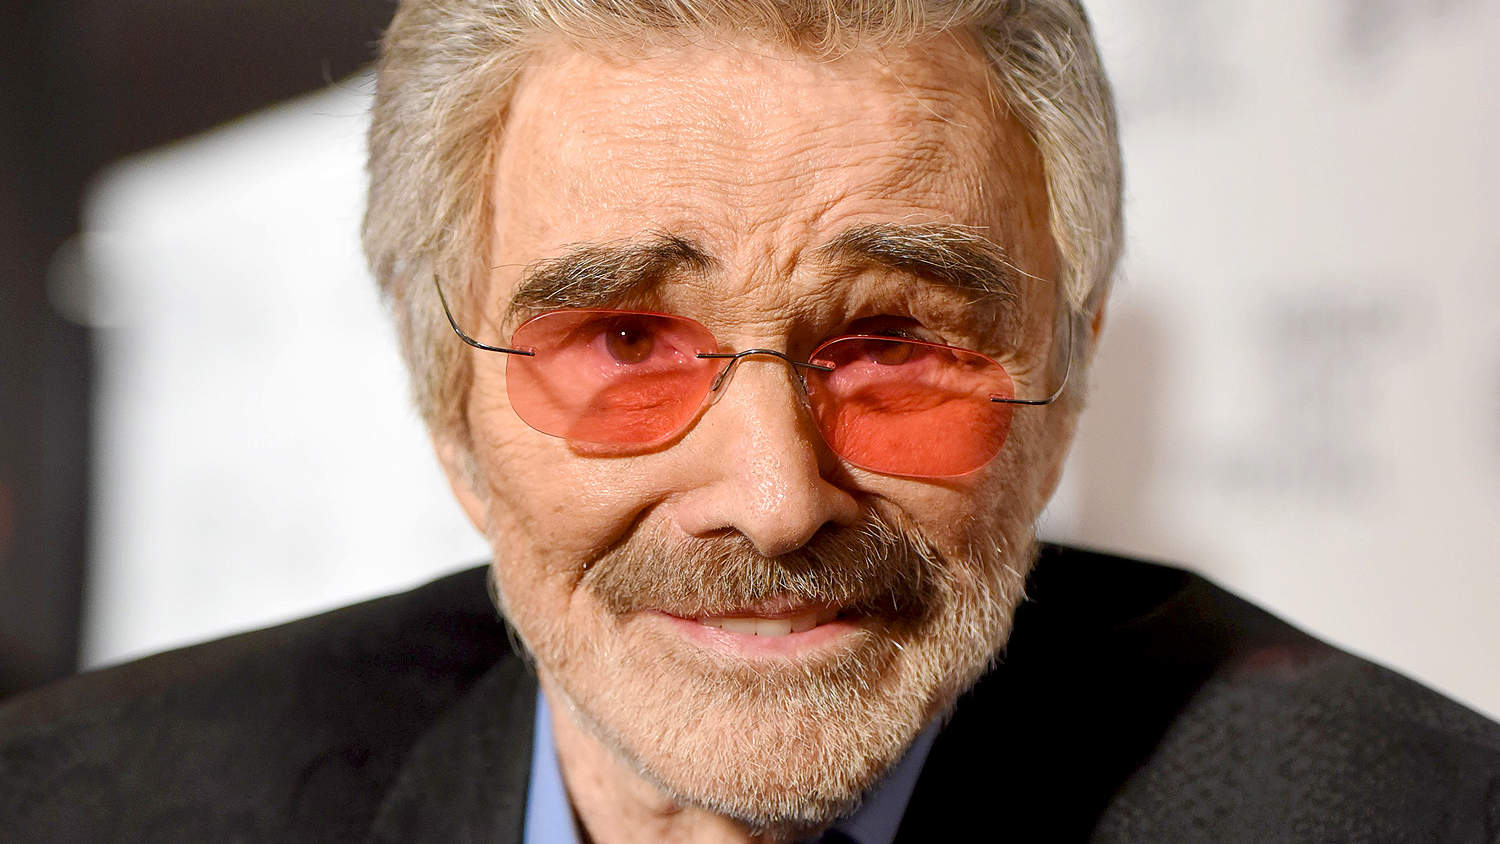 Burt Reynolds, Screen Legend and Sex Symbol, Dies at 82